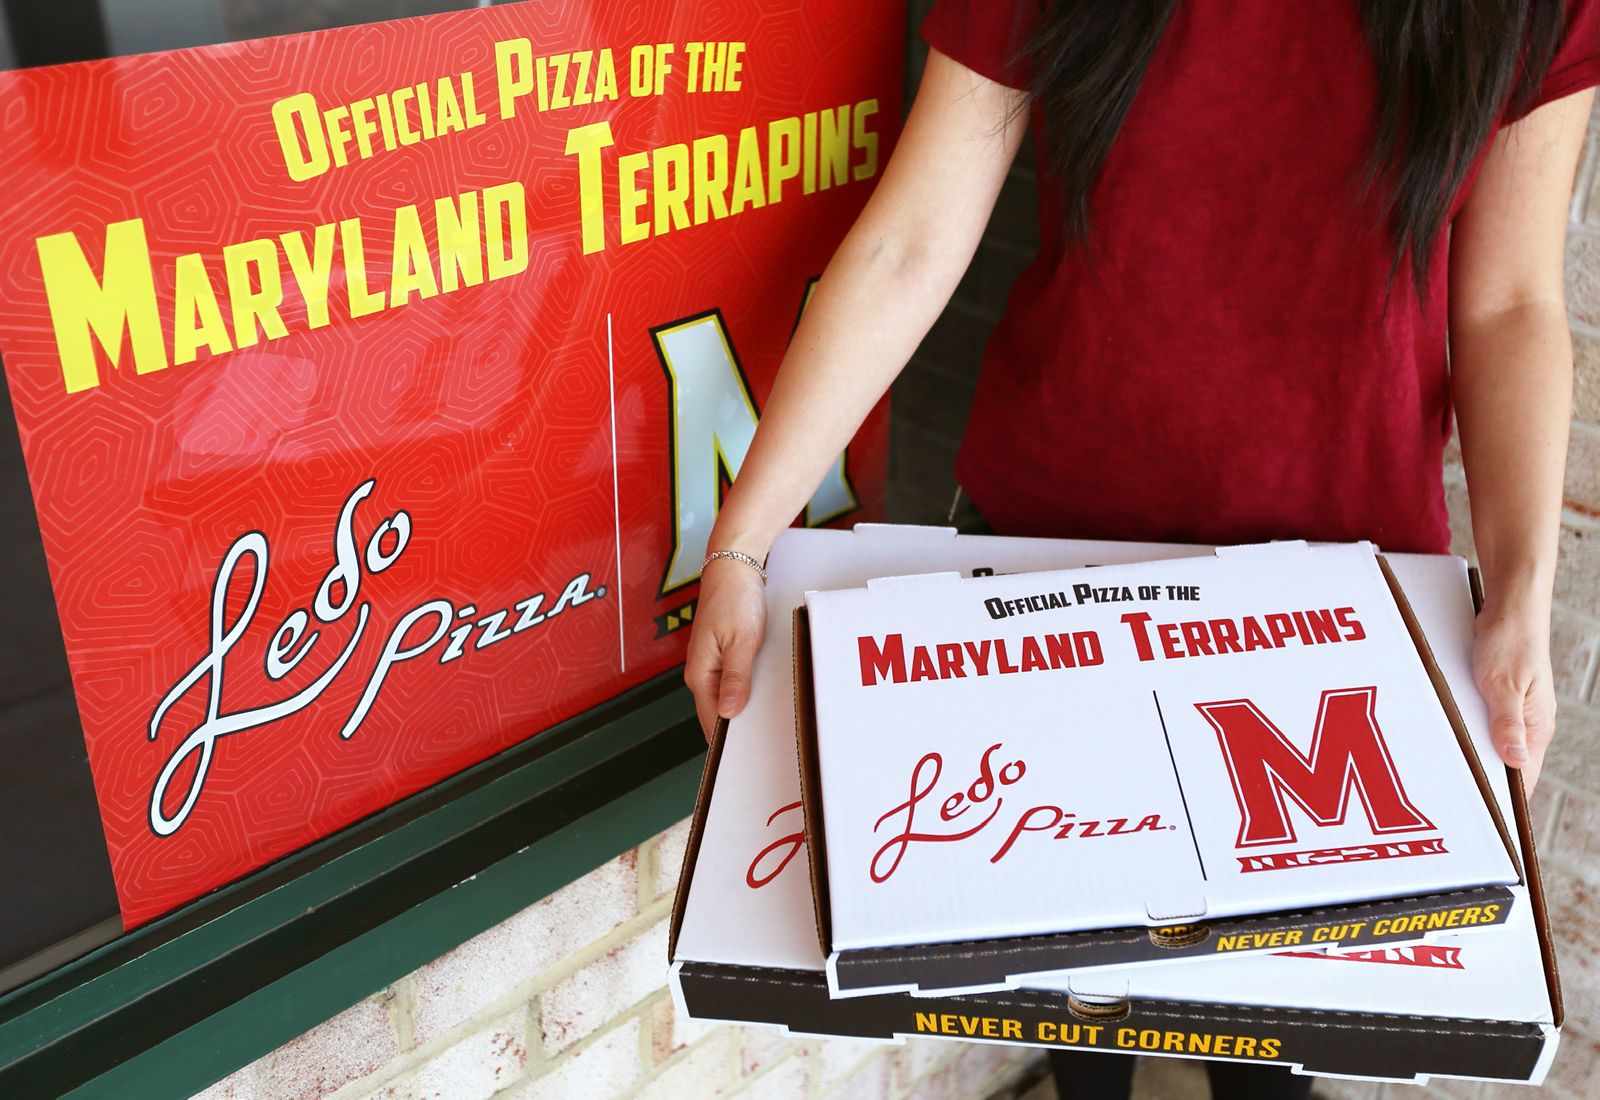 Ledo Pizza Named Official Pizza of the Maryland Terrapins